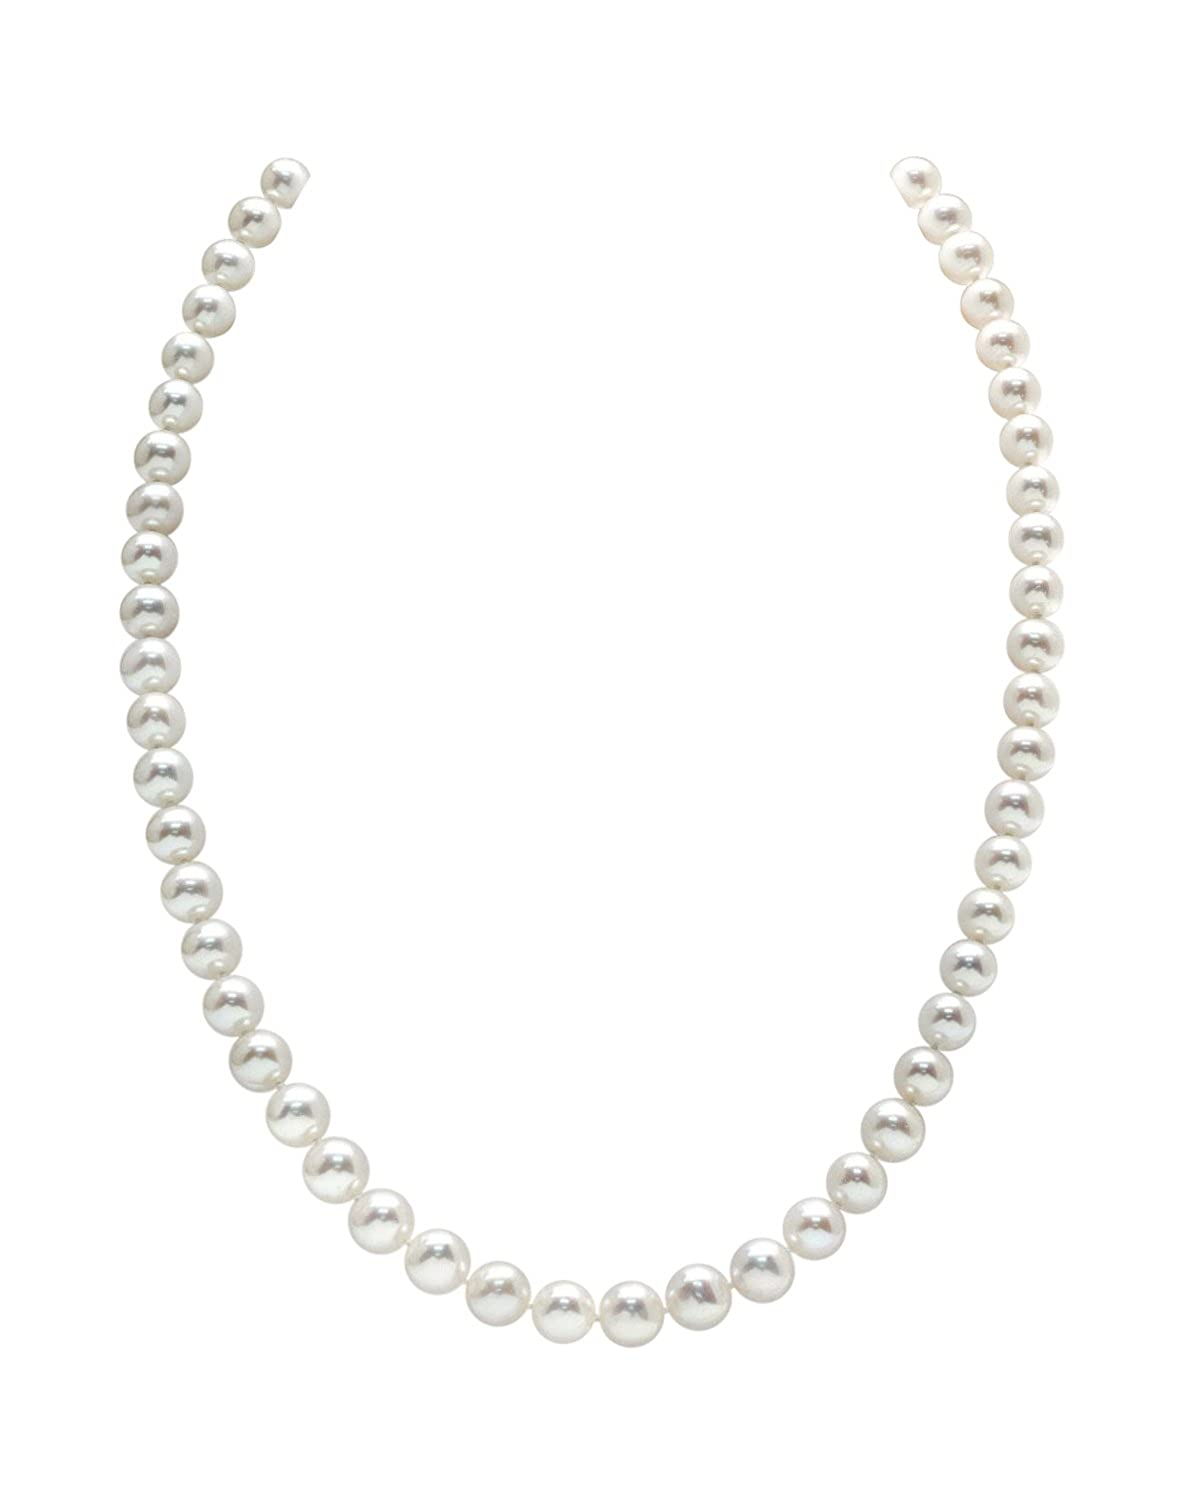 """THE PEARL SOURCE 14K Gold 7-8mm AAA Quality White Freshwater Cultured Pearl Necklace for Women in 18"""" Princess Length"""